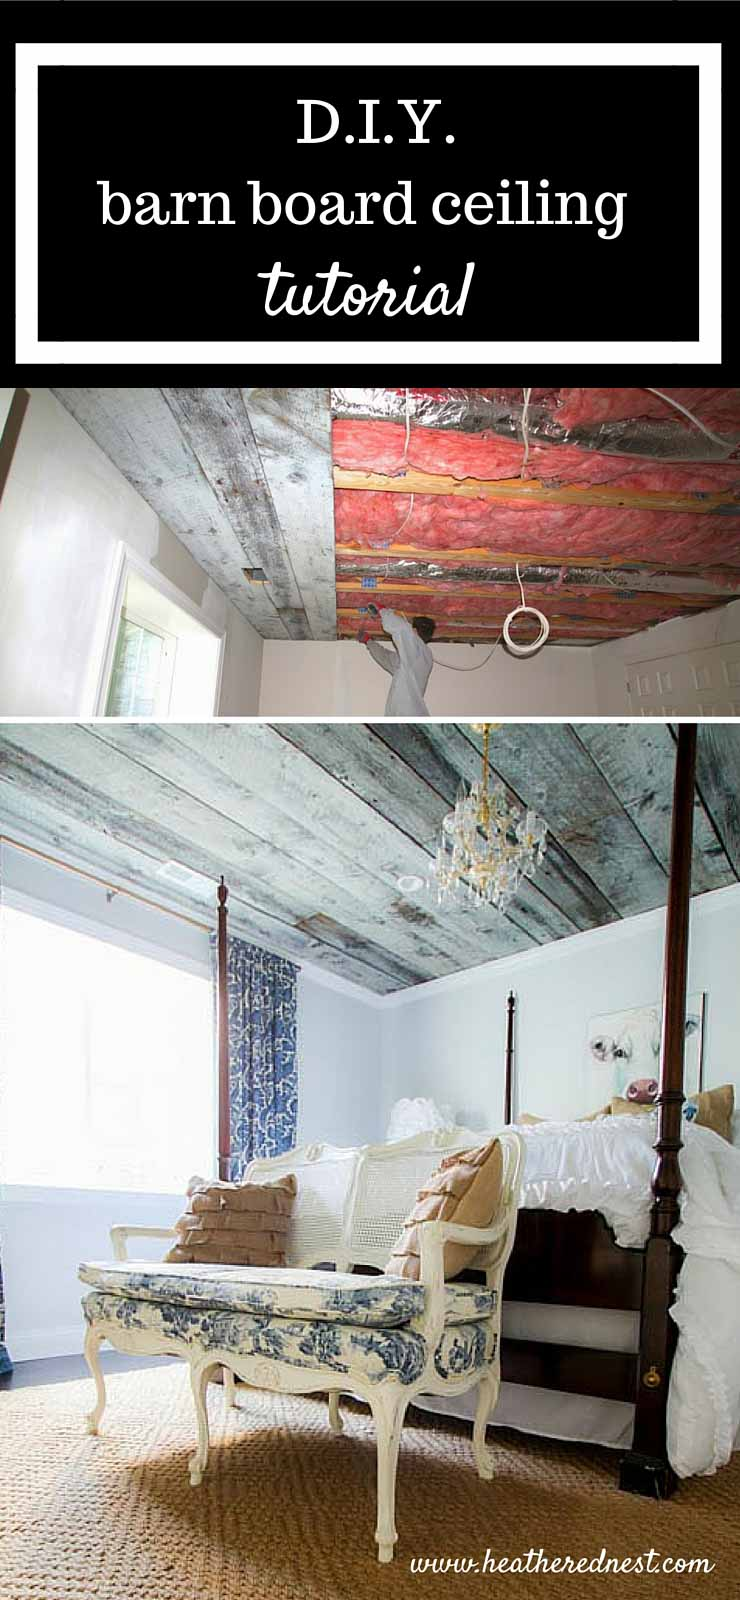 barn-wood-DIY-ceiling-wooden-ceiling-how-to-www.heatherednest.com-1